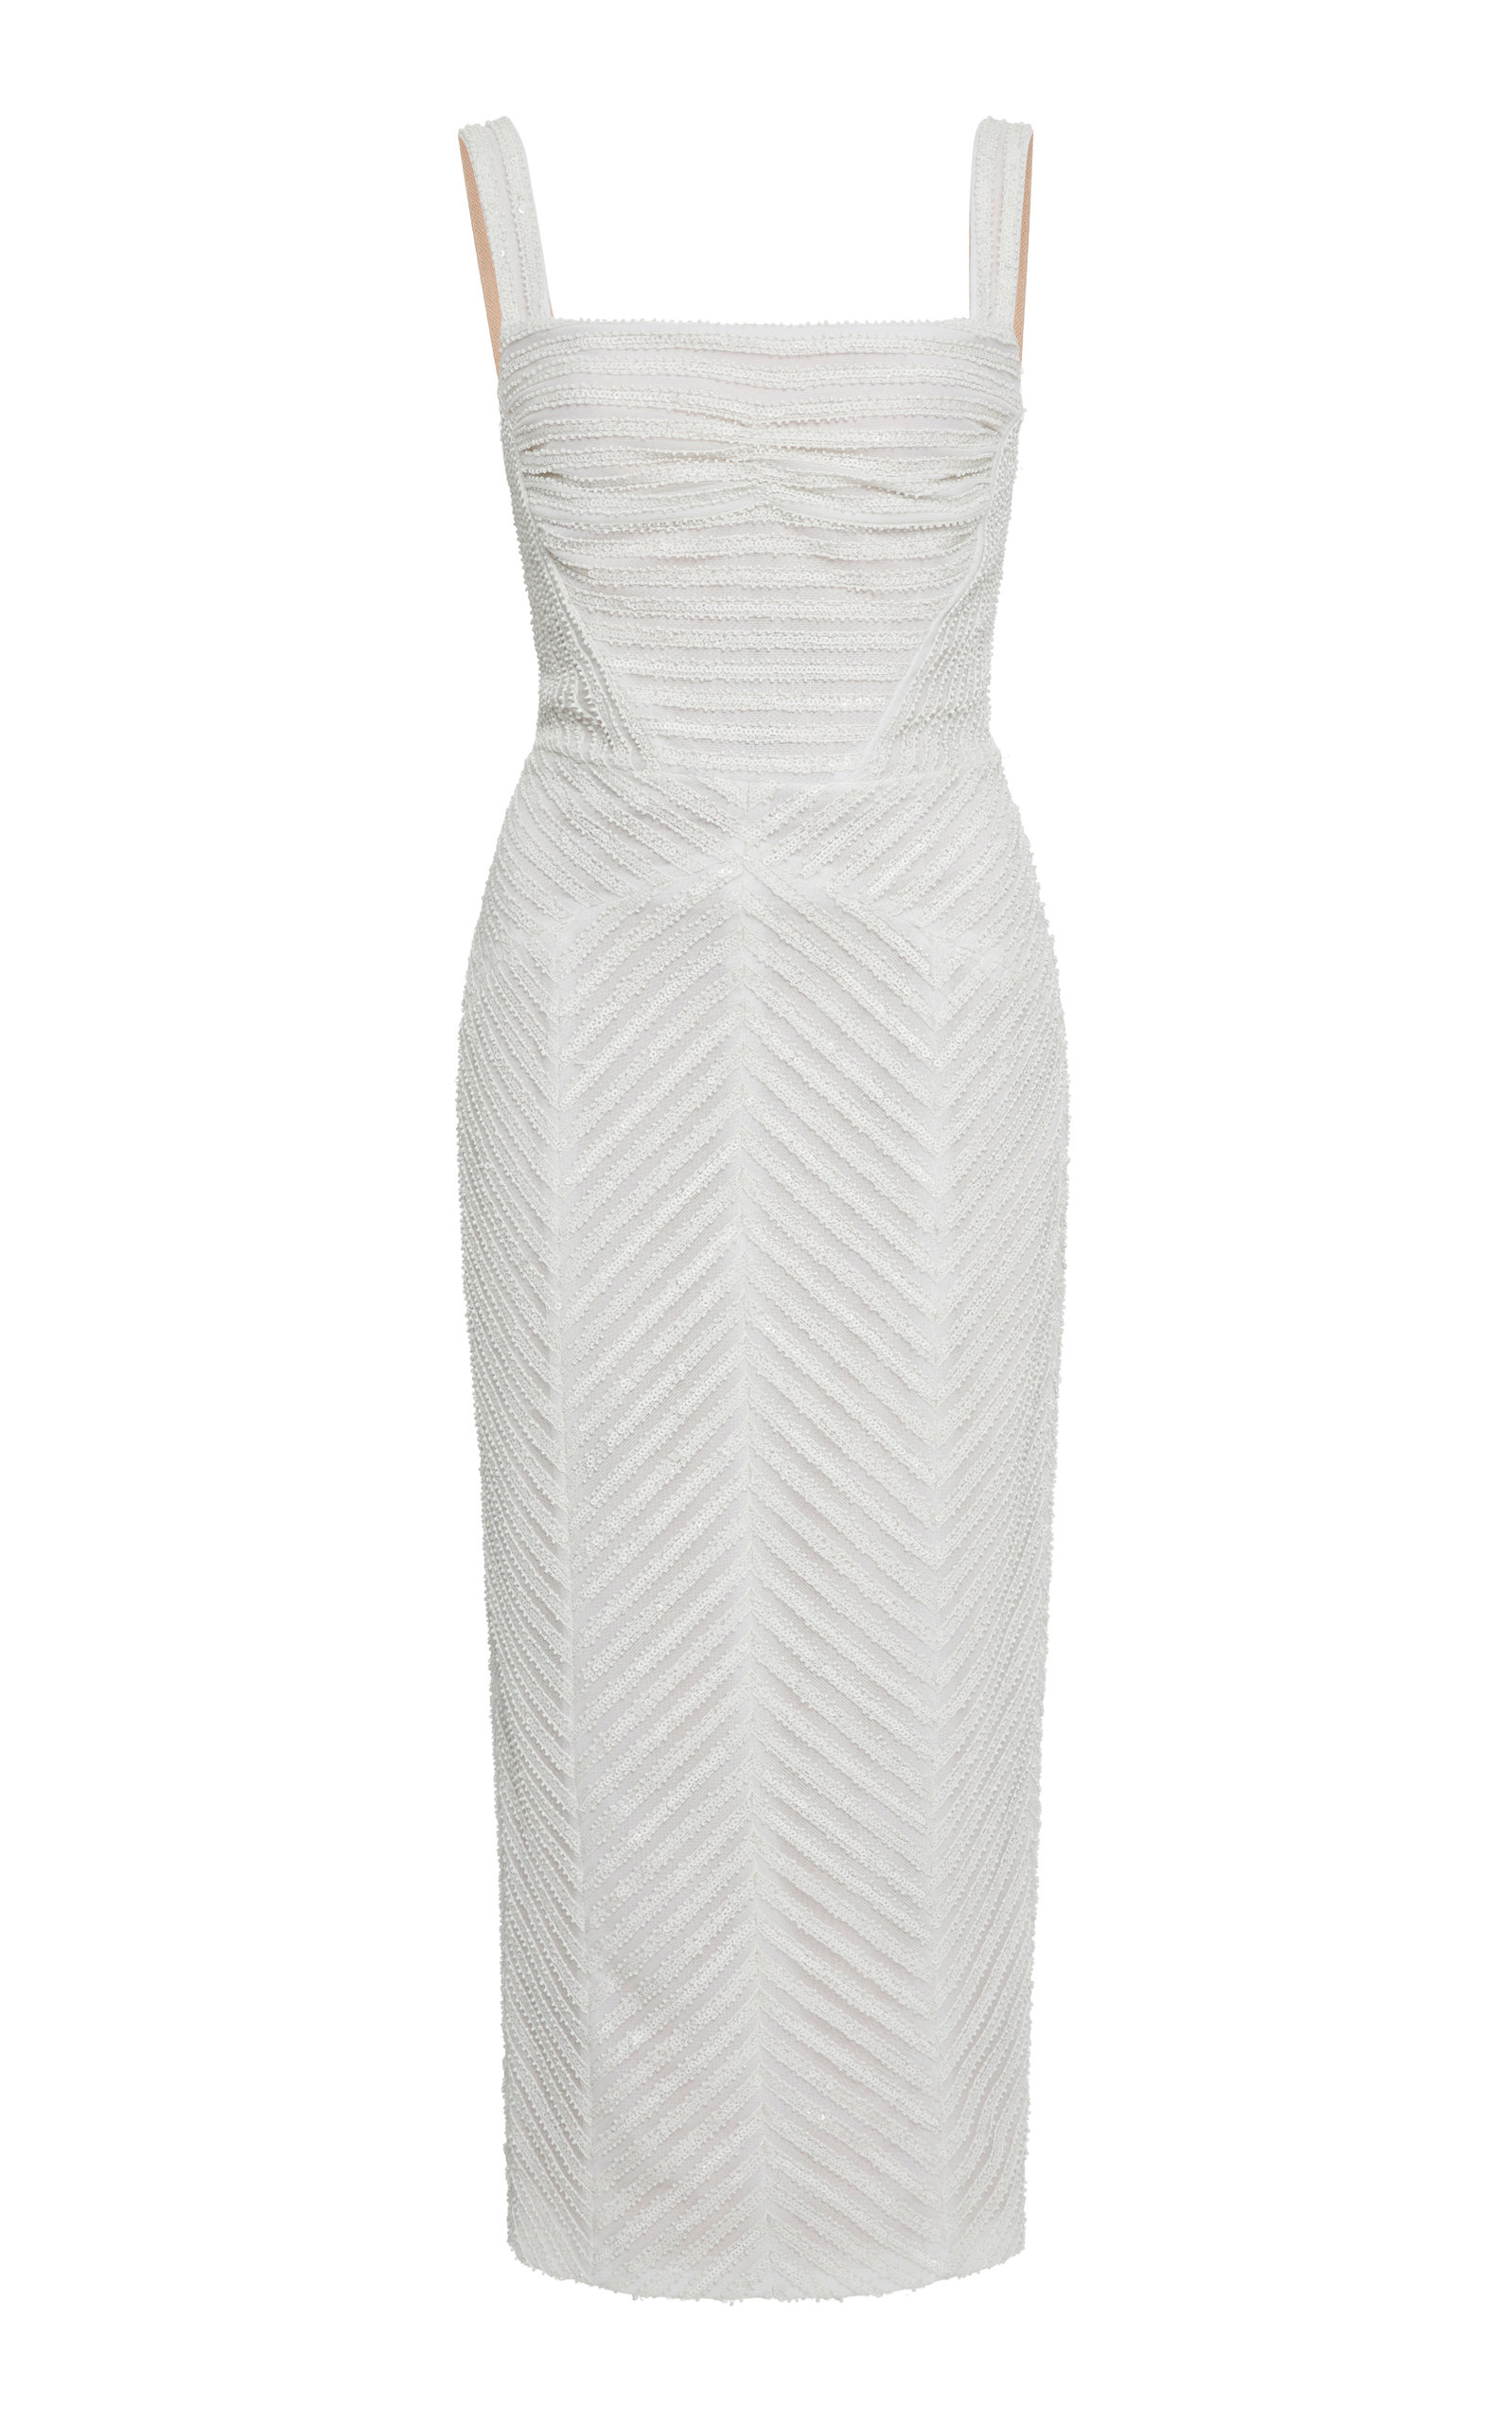 RACHEL GILBERT PIPPIN TEXTURED DRESS